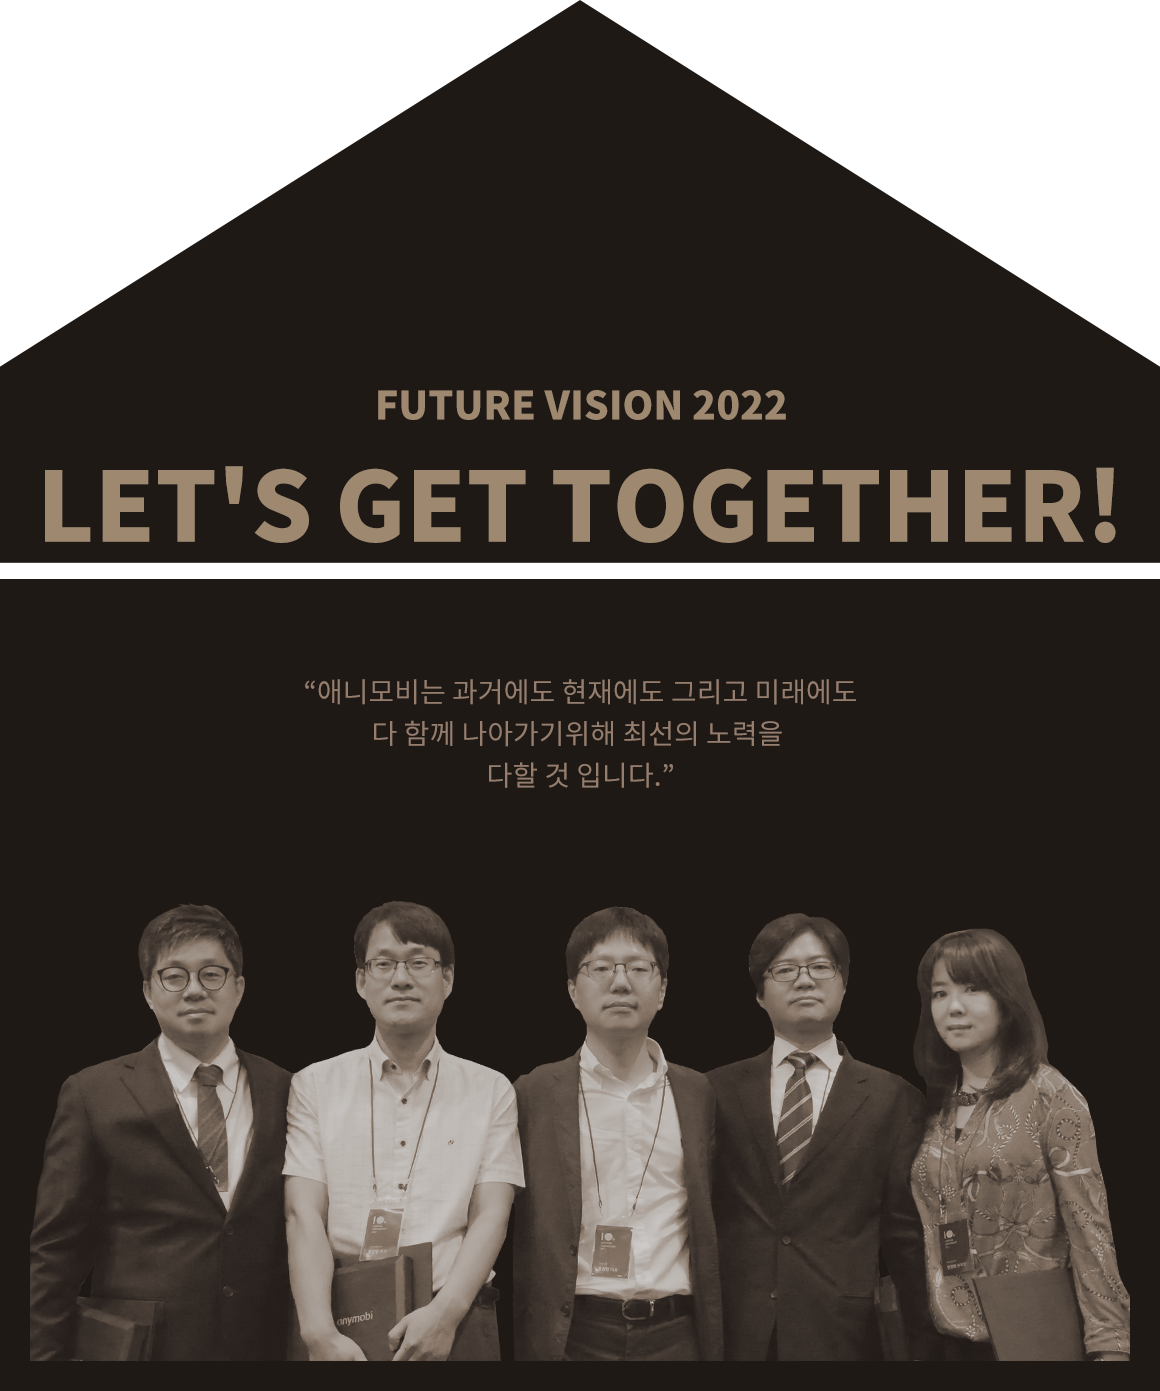 Future Vision 2022. Let's get together!